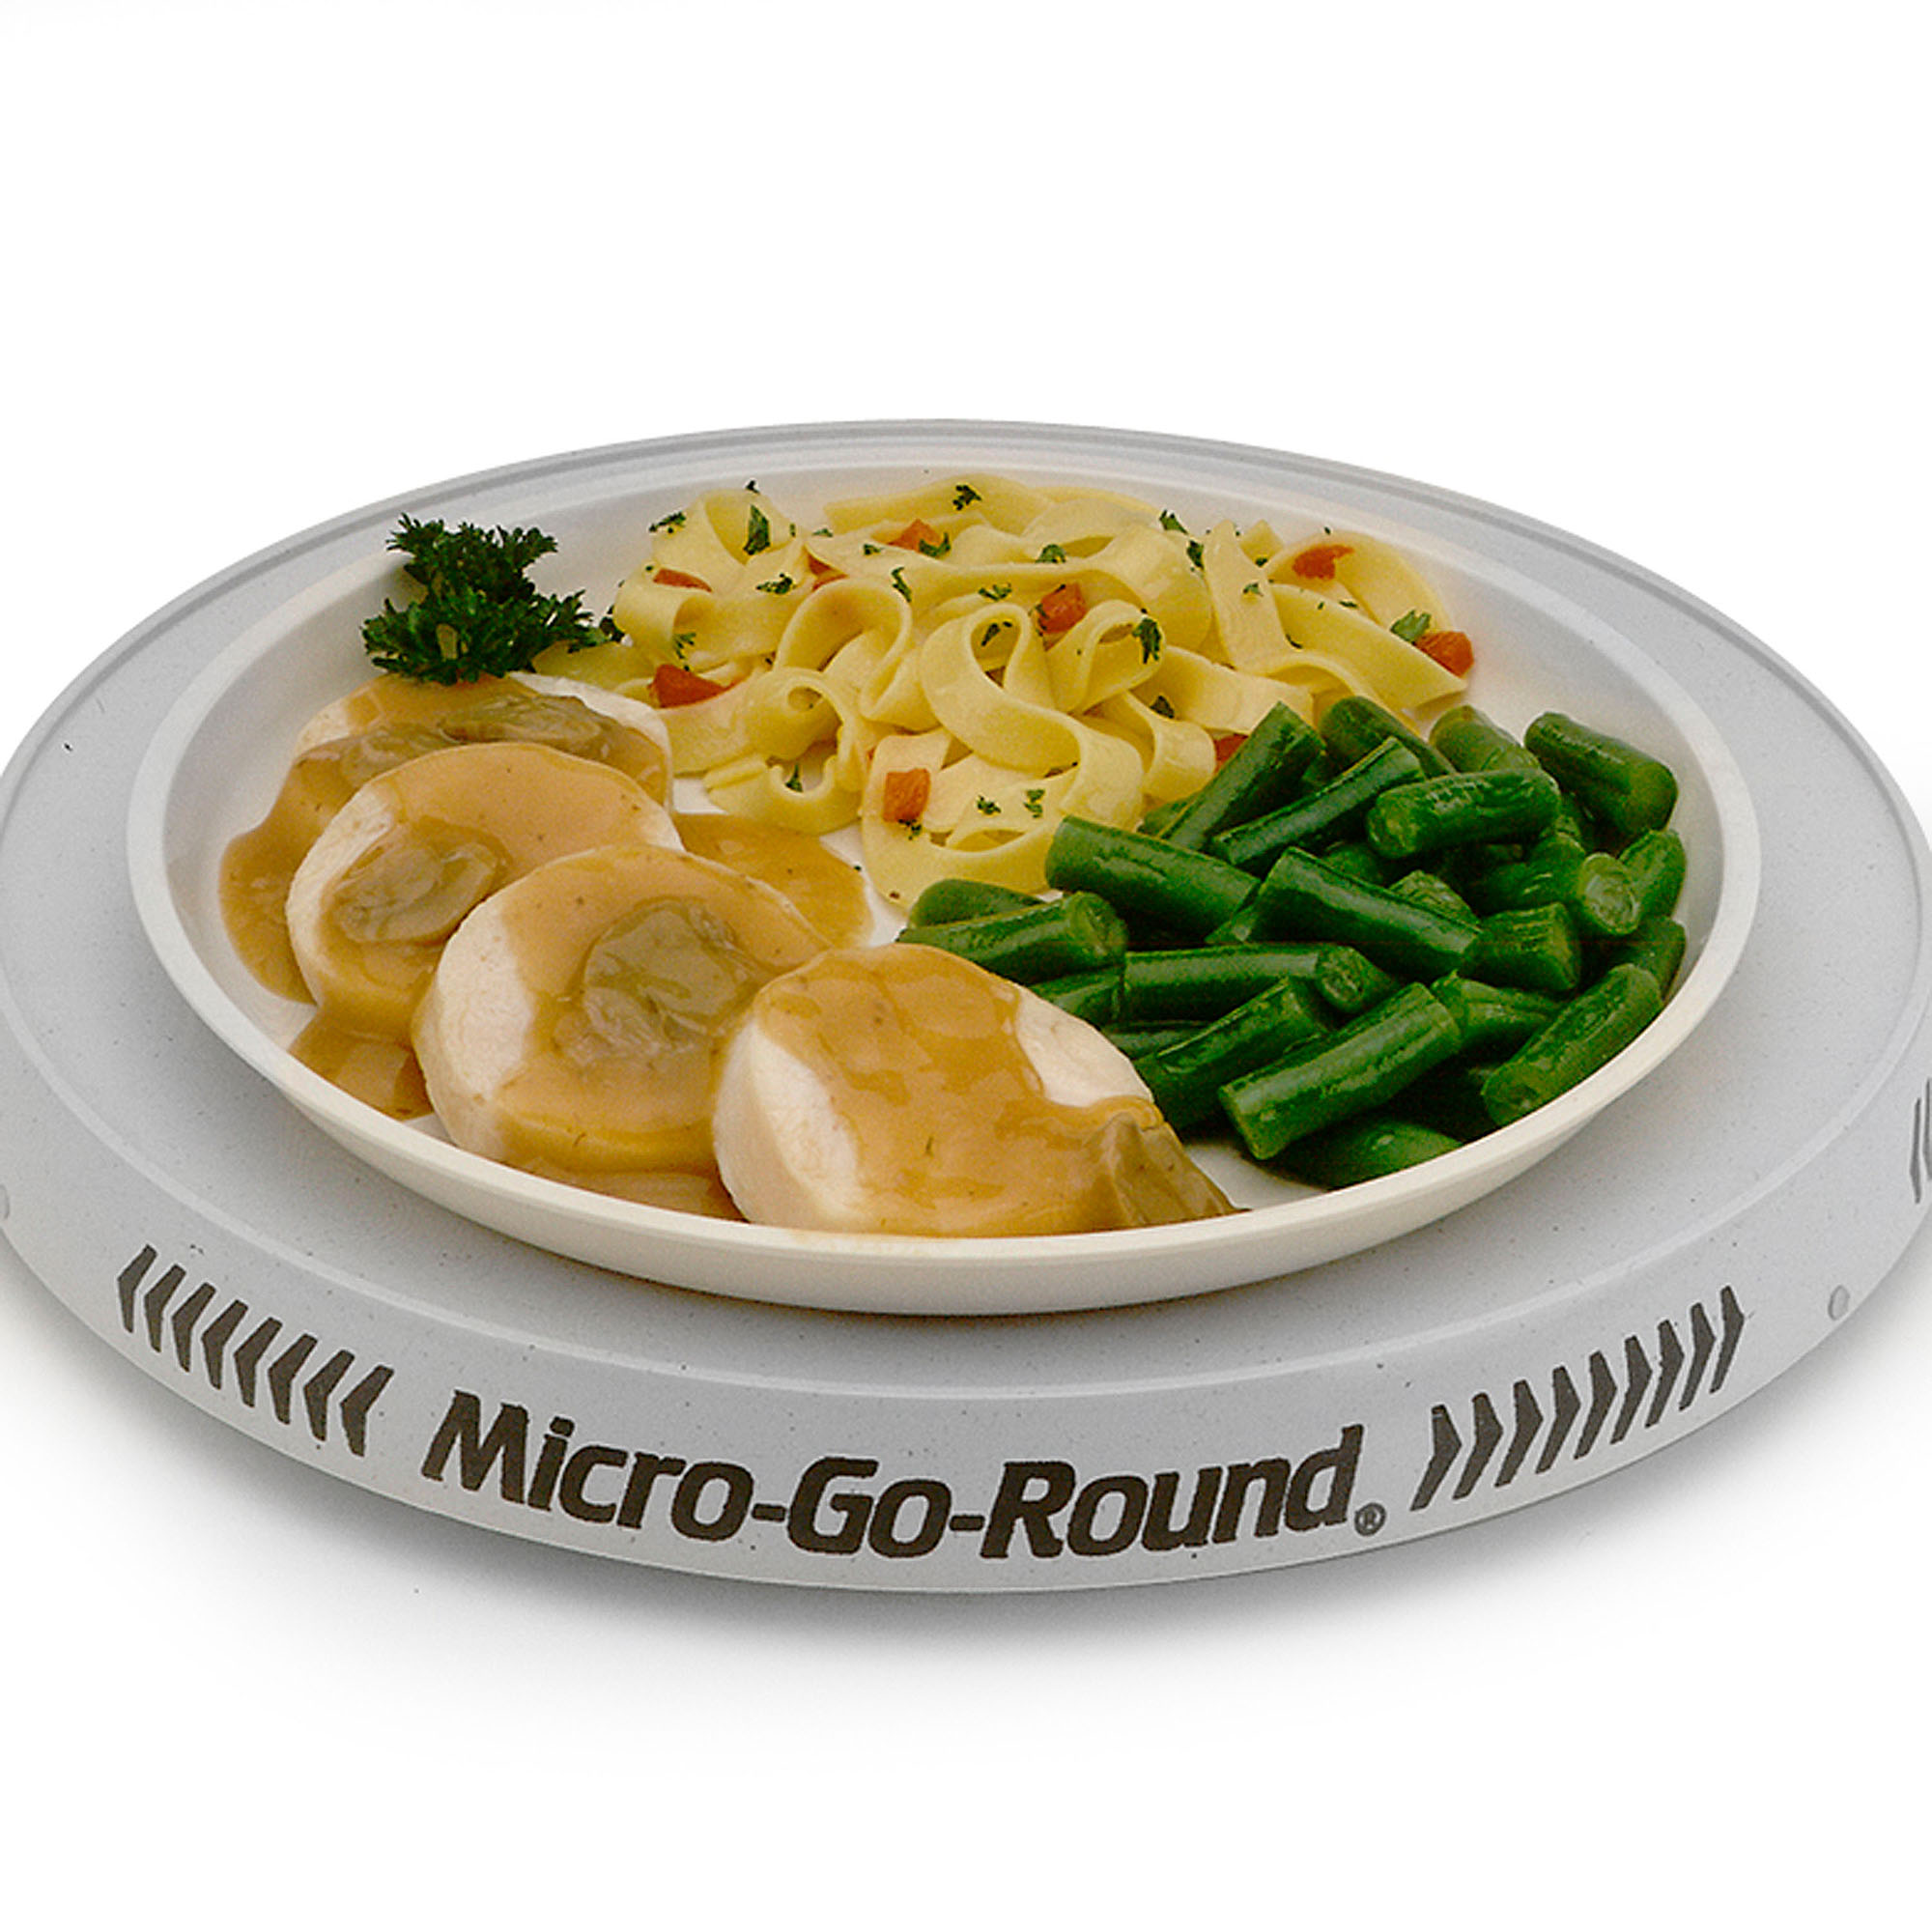 Nordic Ware 62301 Round Microwave Oven Turntable For Use With Full And Mid Sized Microwaves